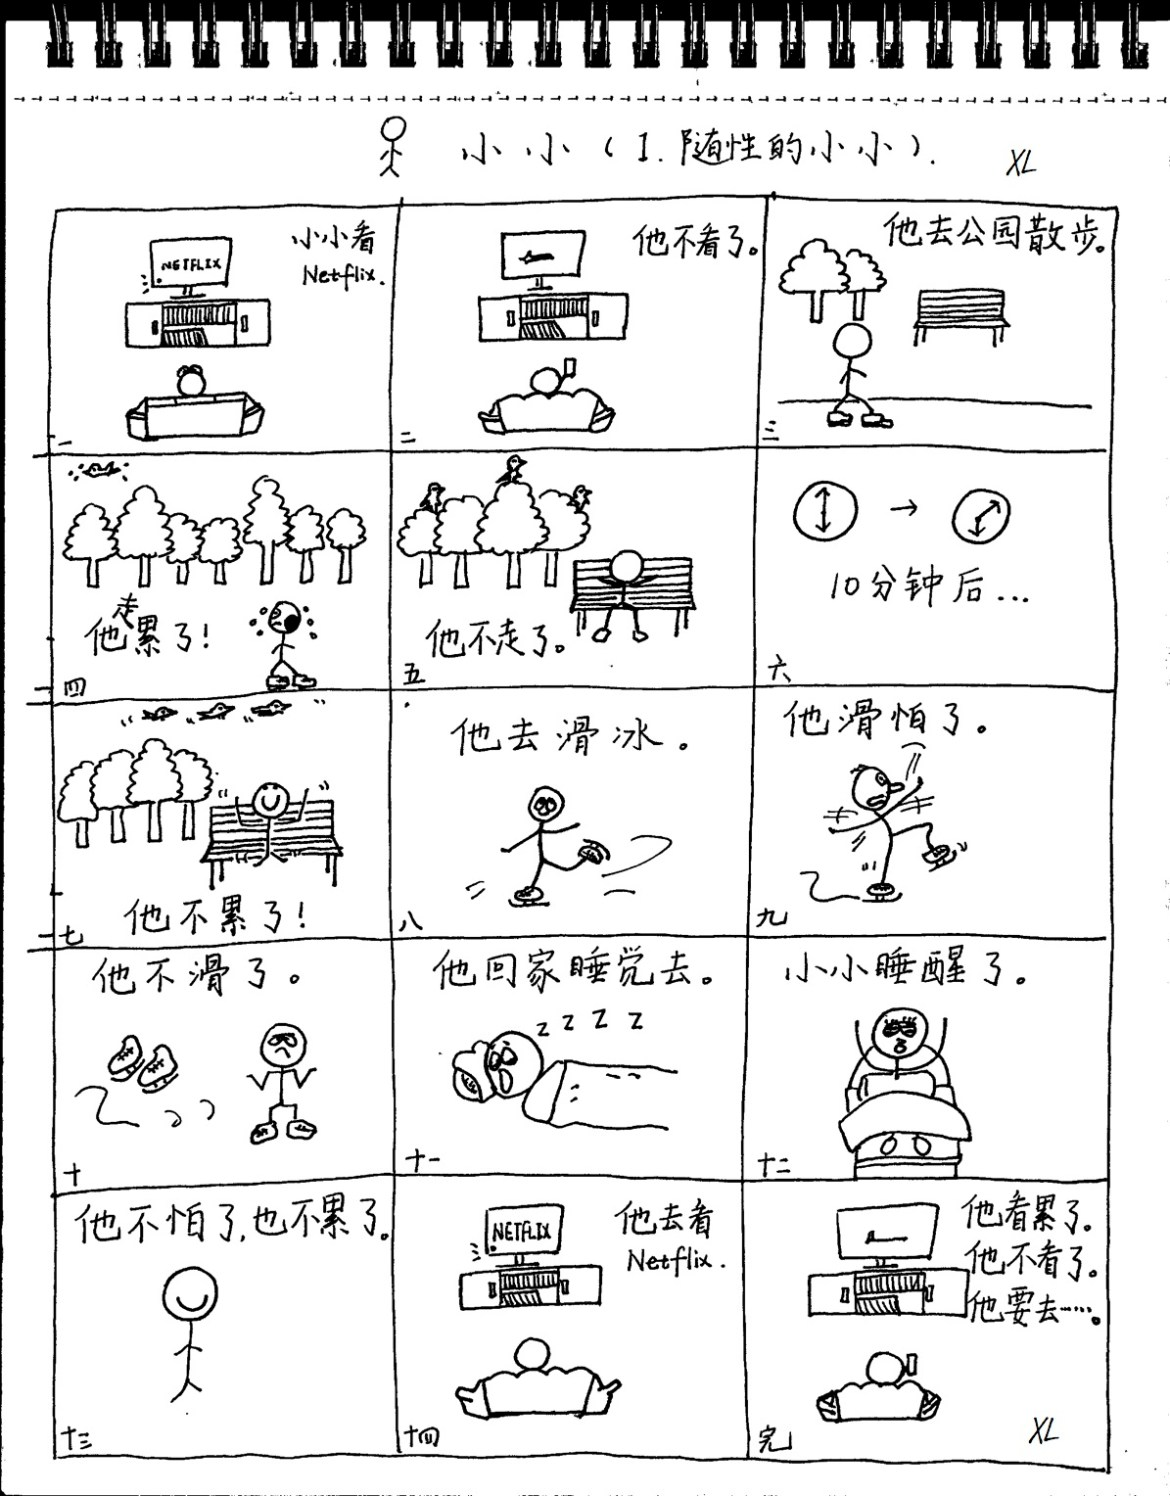 xian_lu_comic_strip_for_cfl_samples8